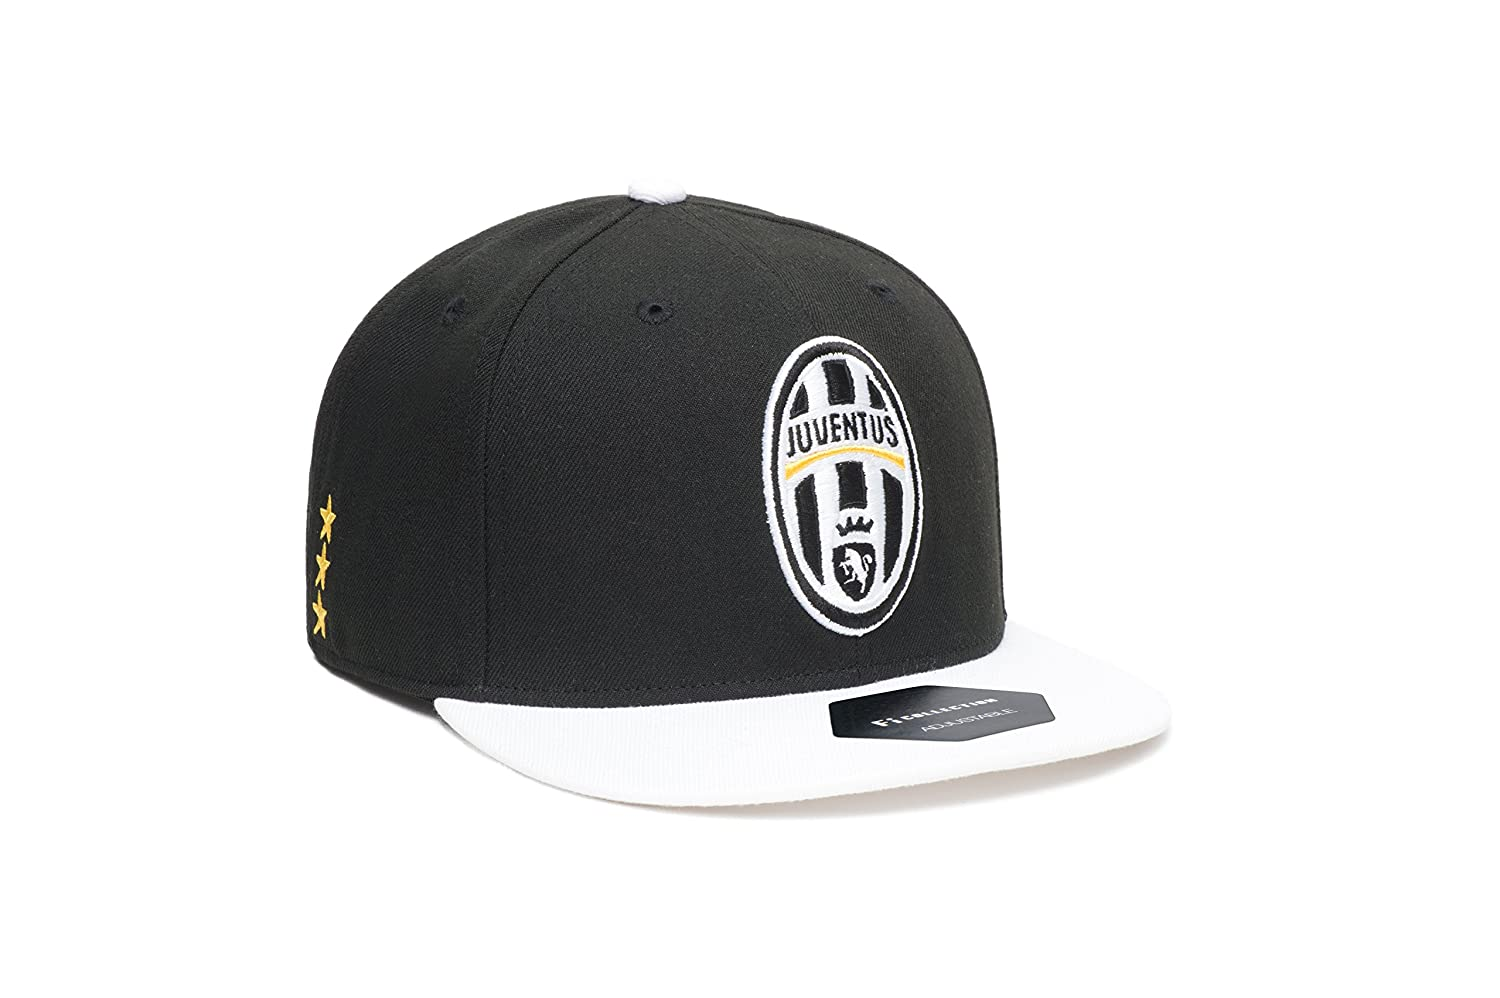 7fb9257e4f4 Amazon.com   Fi Collection Juventus Team Snapback Hat   Sports   Outdoors